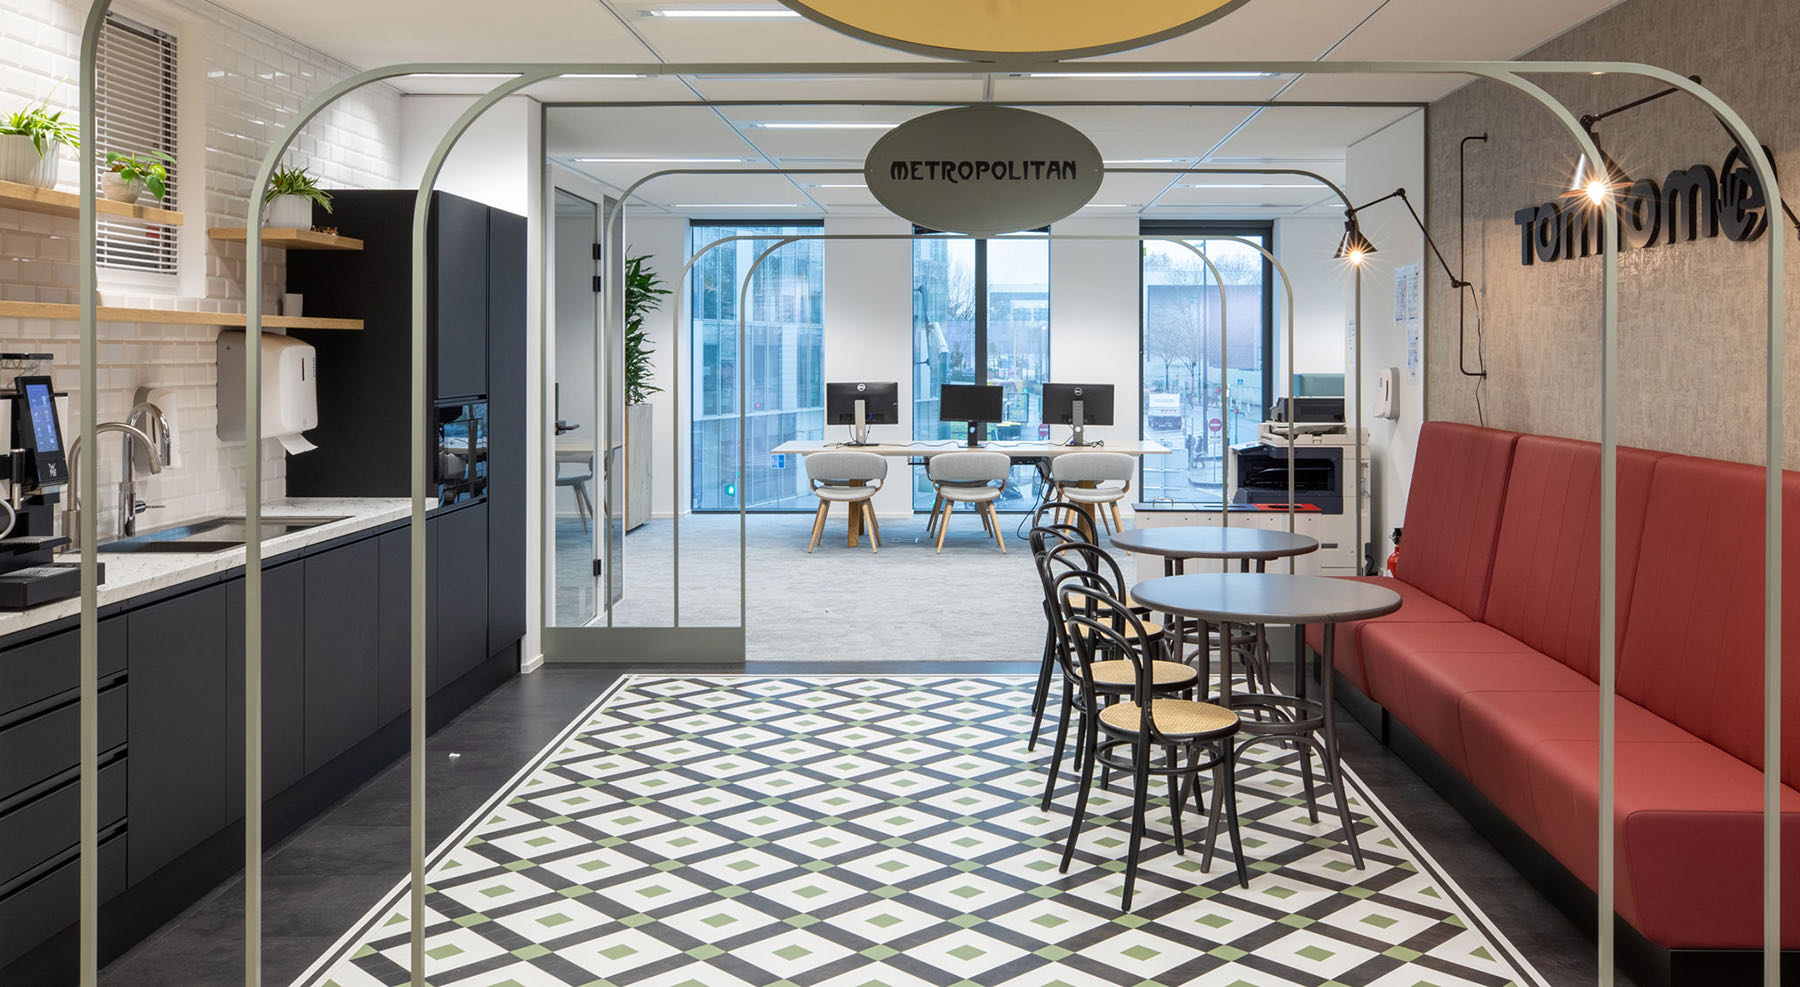 A Look Inside TomTom's New Paris Office